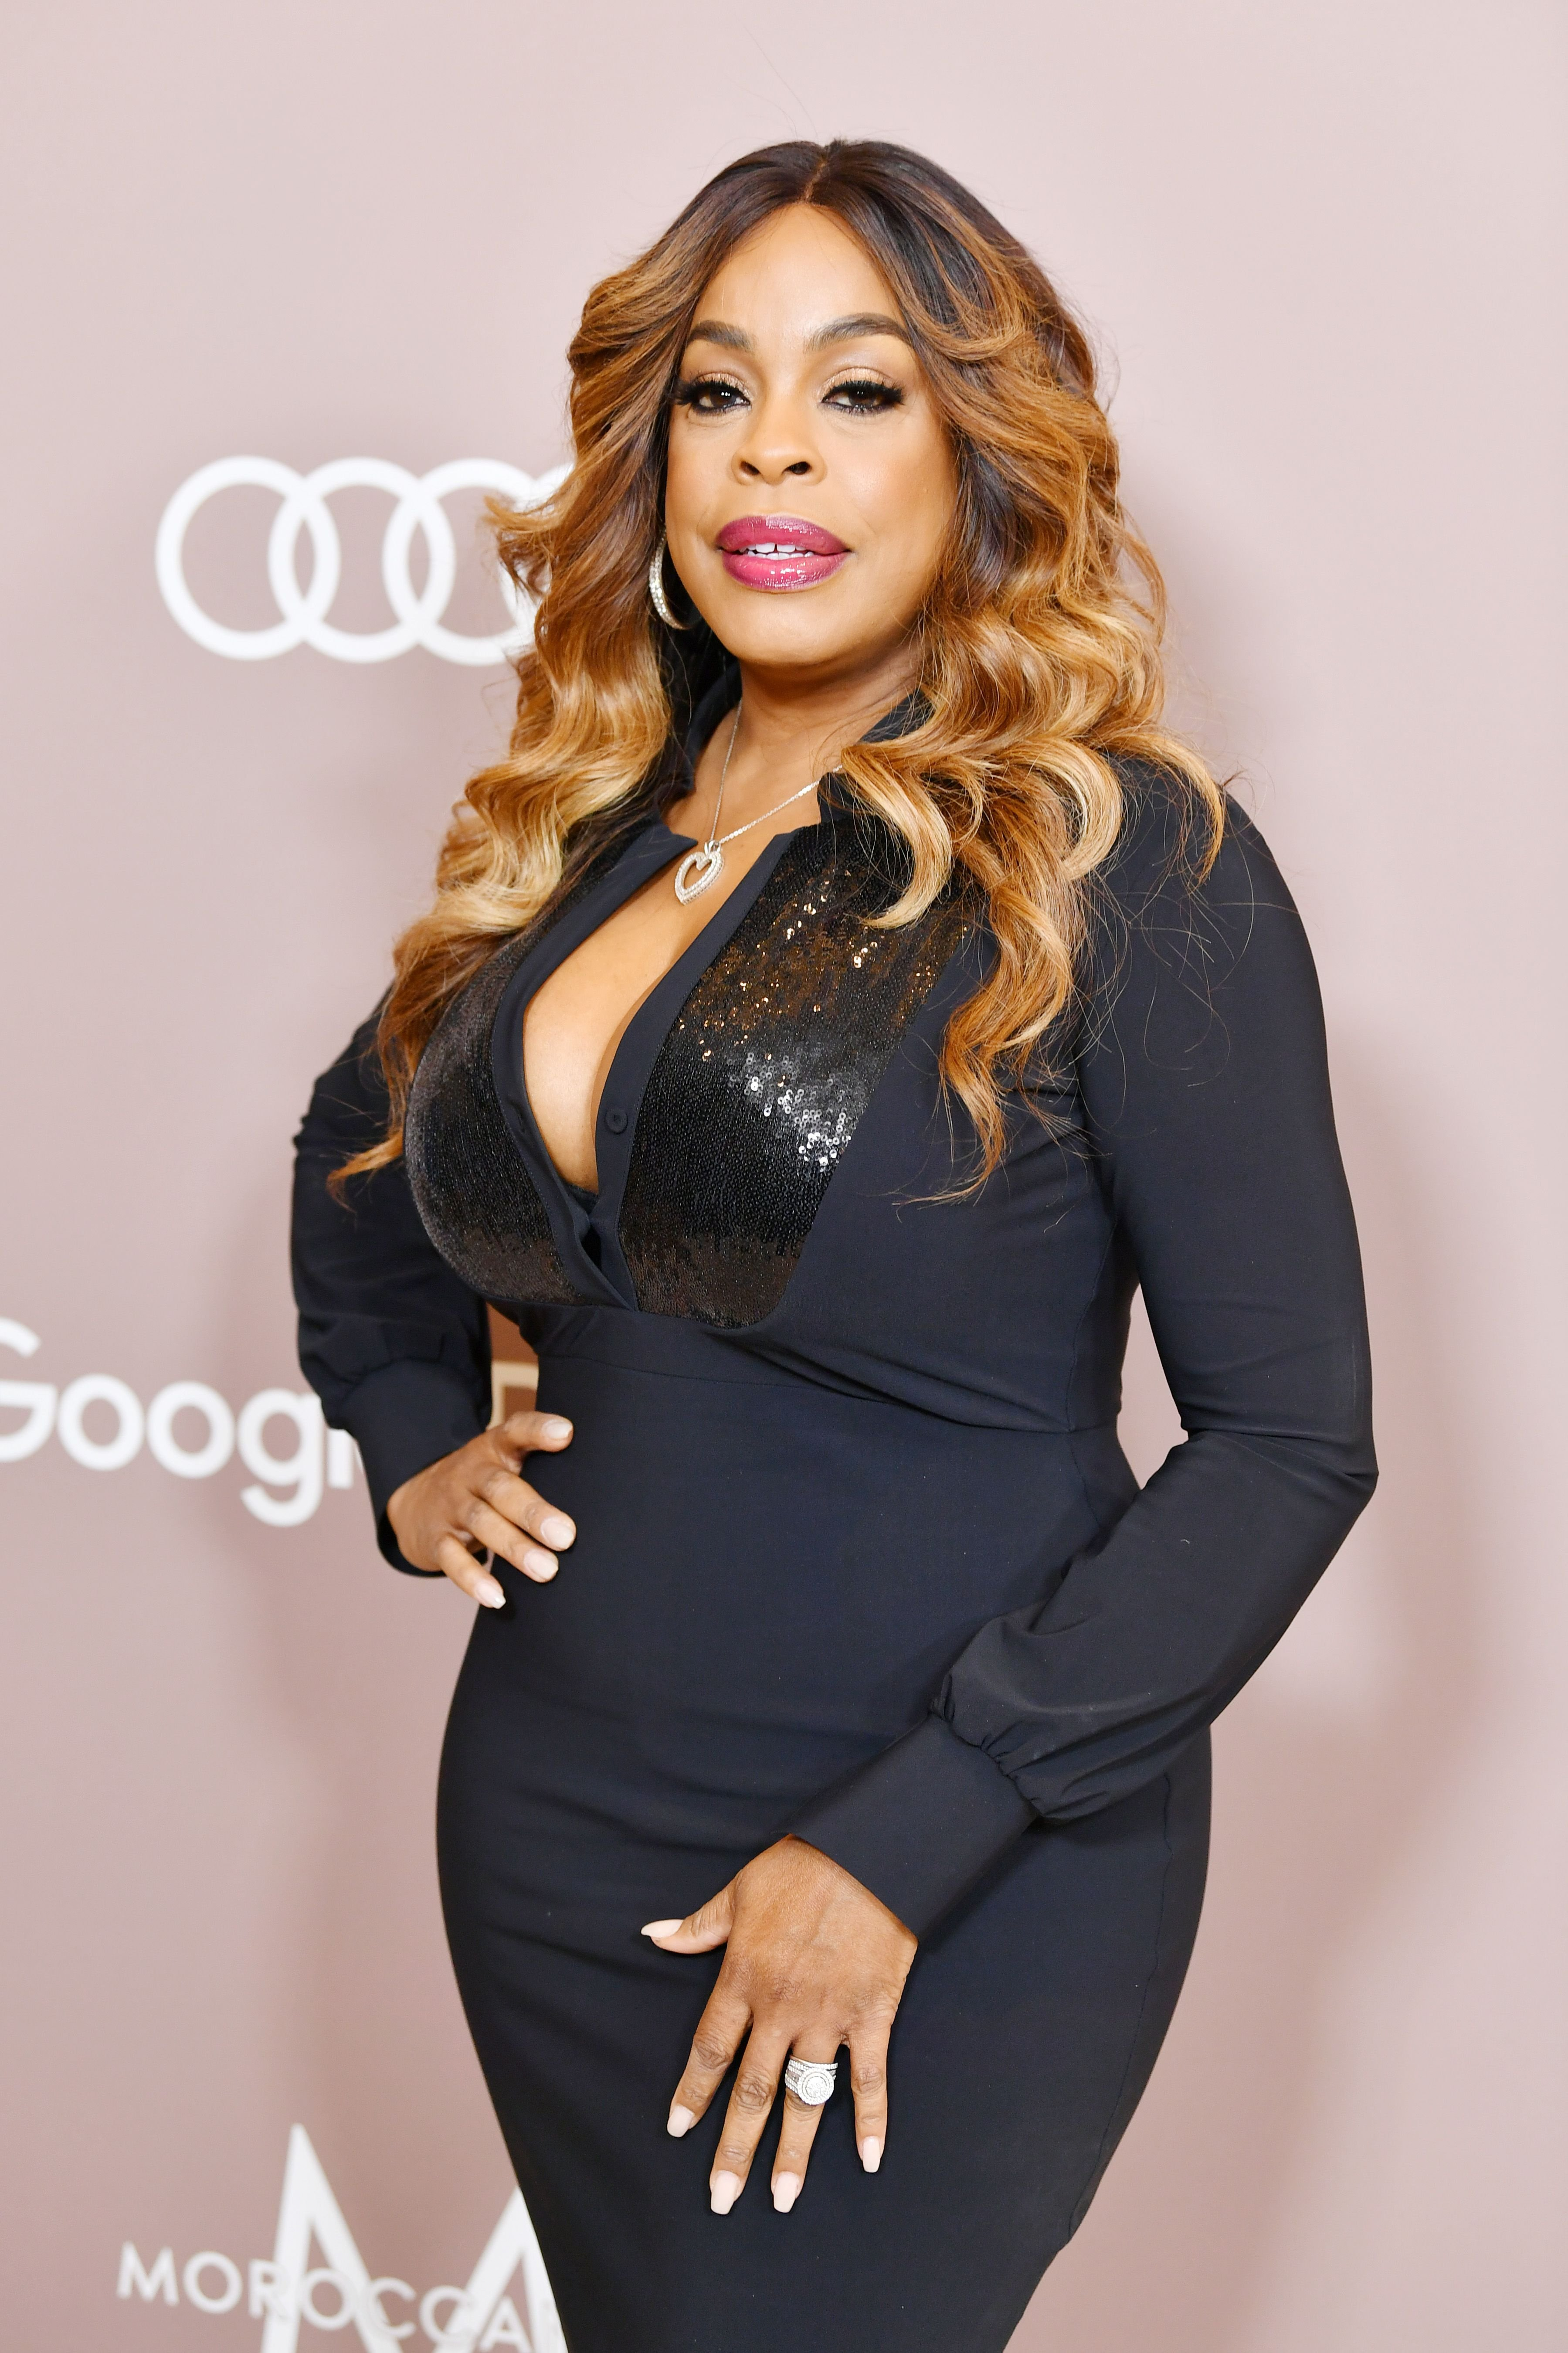 Niecy Nash at Variety's 2019 Power of Women: Los Angeles presented by Lifetime at the Beverly Wilshire Four Seasons Hotel on October 11, 2019 in Beverly Hills, California. | Photo: Getty Images